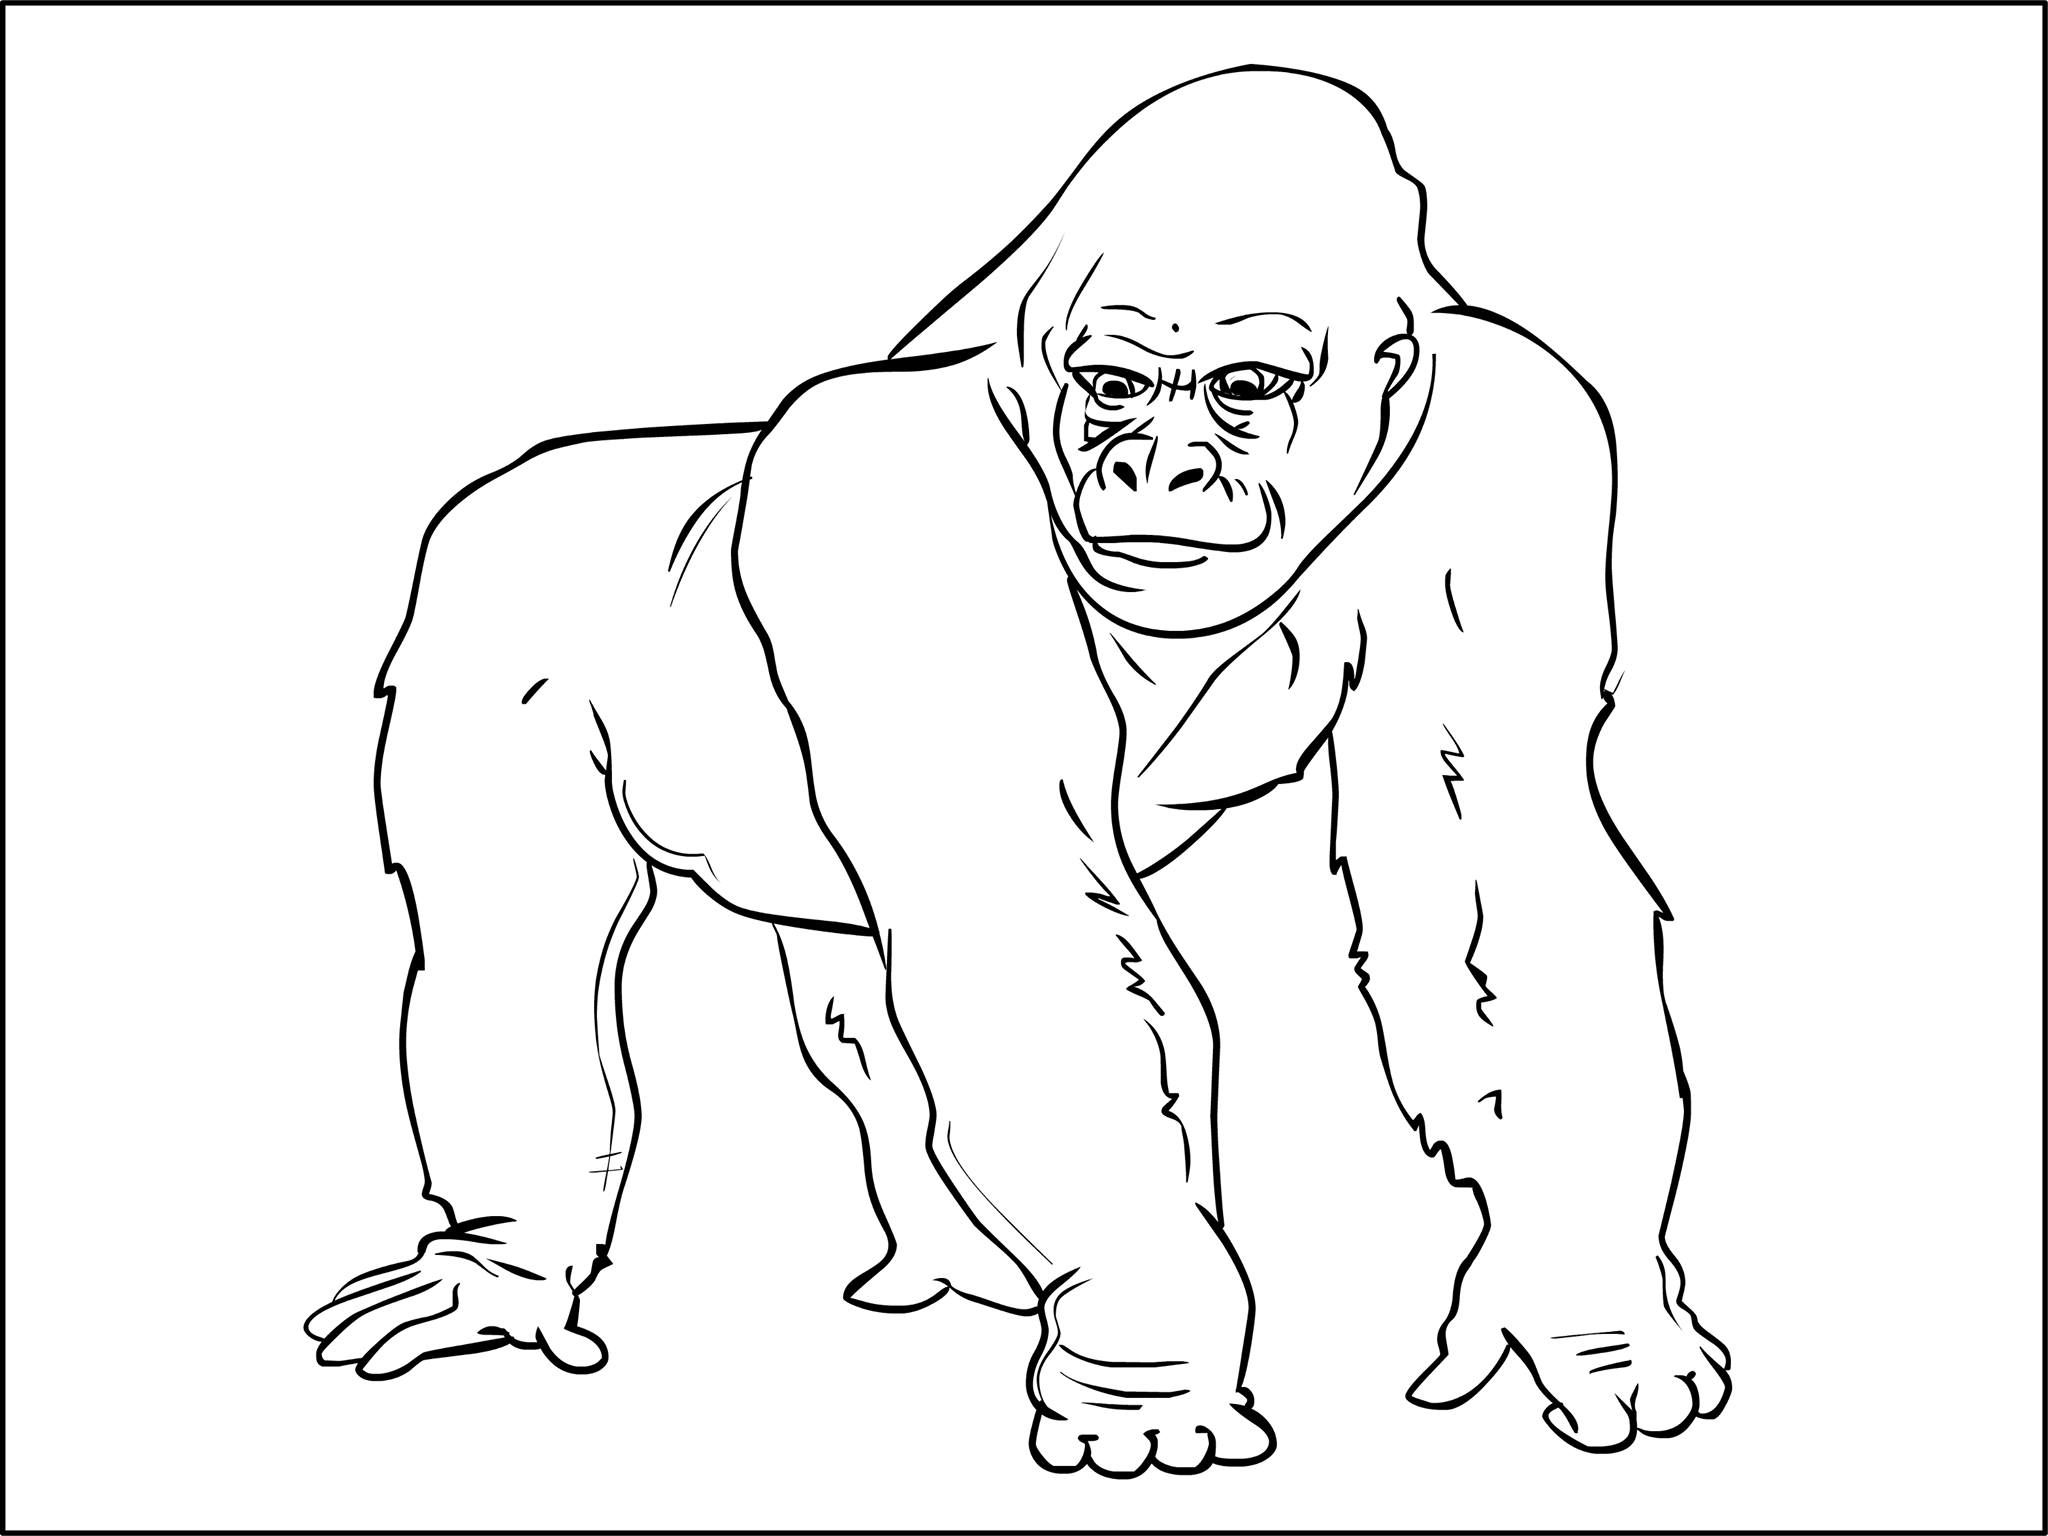 Coloriages Animaux Sauvages - MonsieurTeddy   Coloriage ...